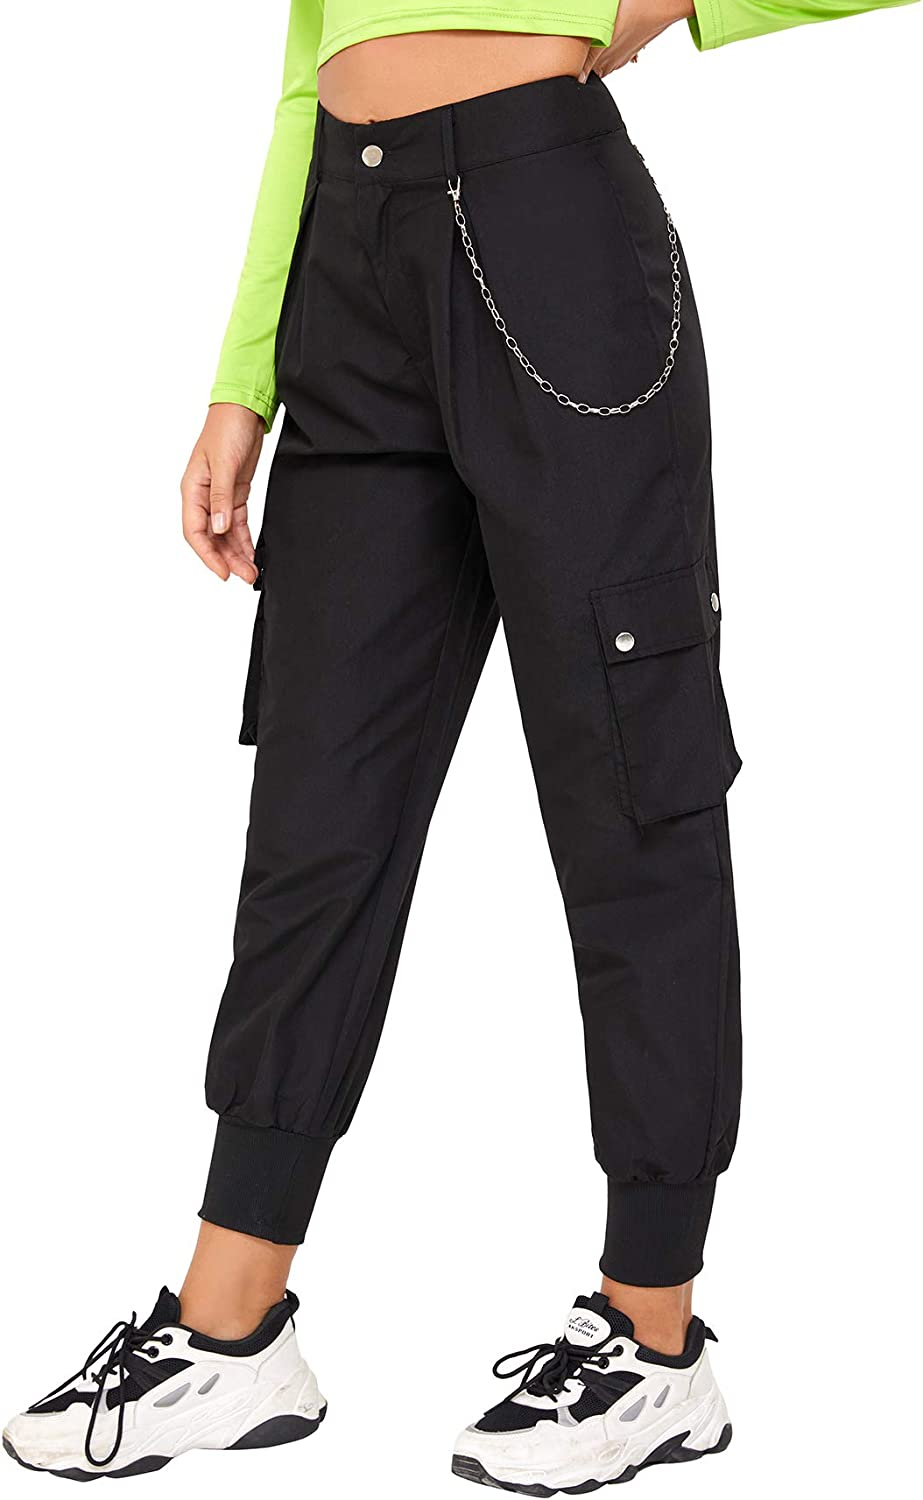 Milumia Women Casual High Waist Pocket Side Cropped Jogger Cargo Pants with Chain